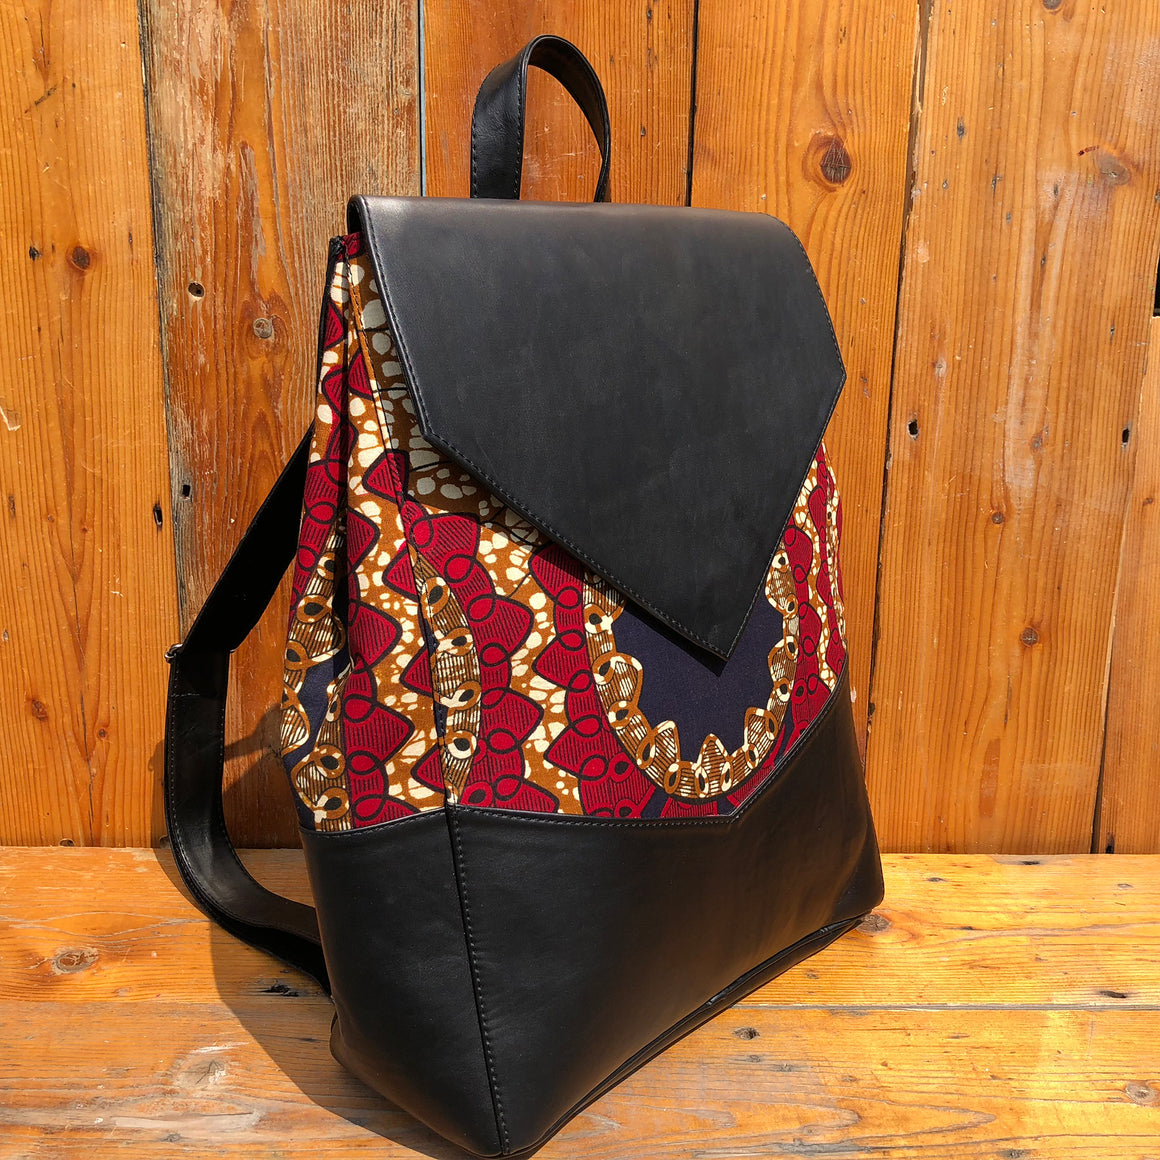 Fair Trade Vegan Leather African Print Handmade Backpacks - Red & Black